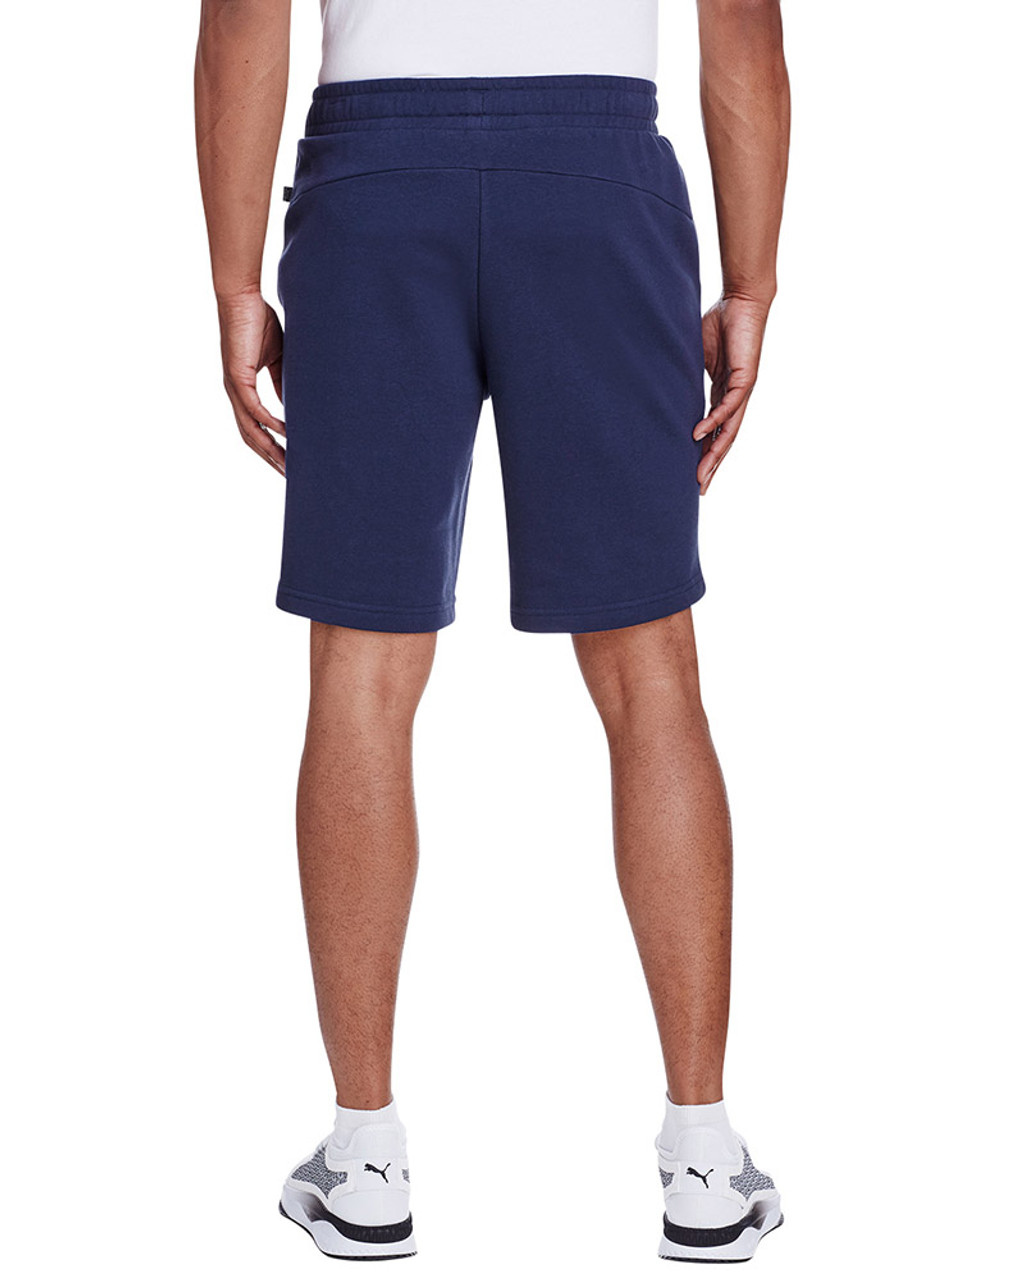 Peacoat/Quiet Shade - back, 582008 Puma Sport Essential Adult Bermuda Short | Blankclothing.ca